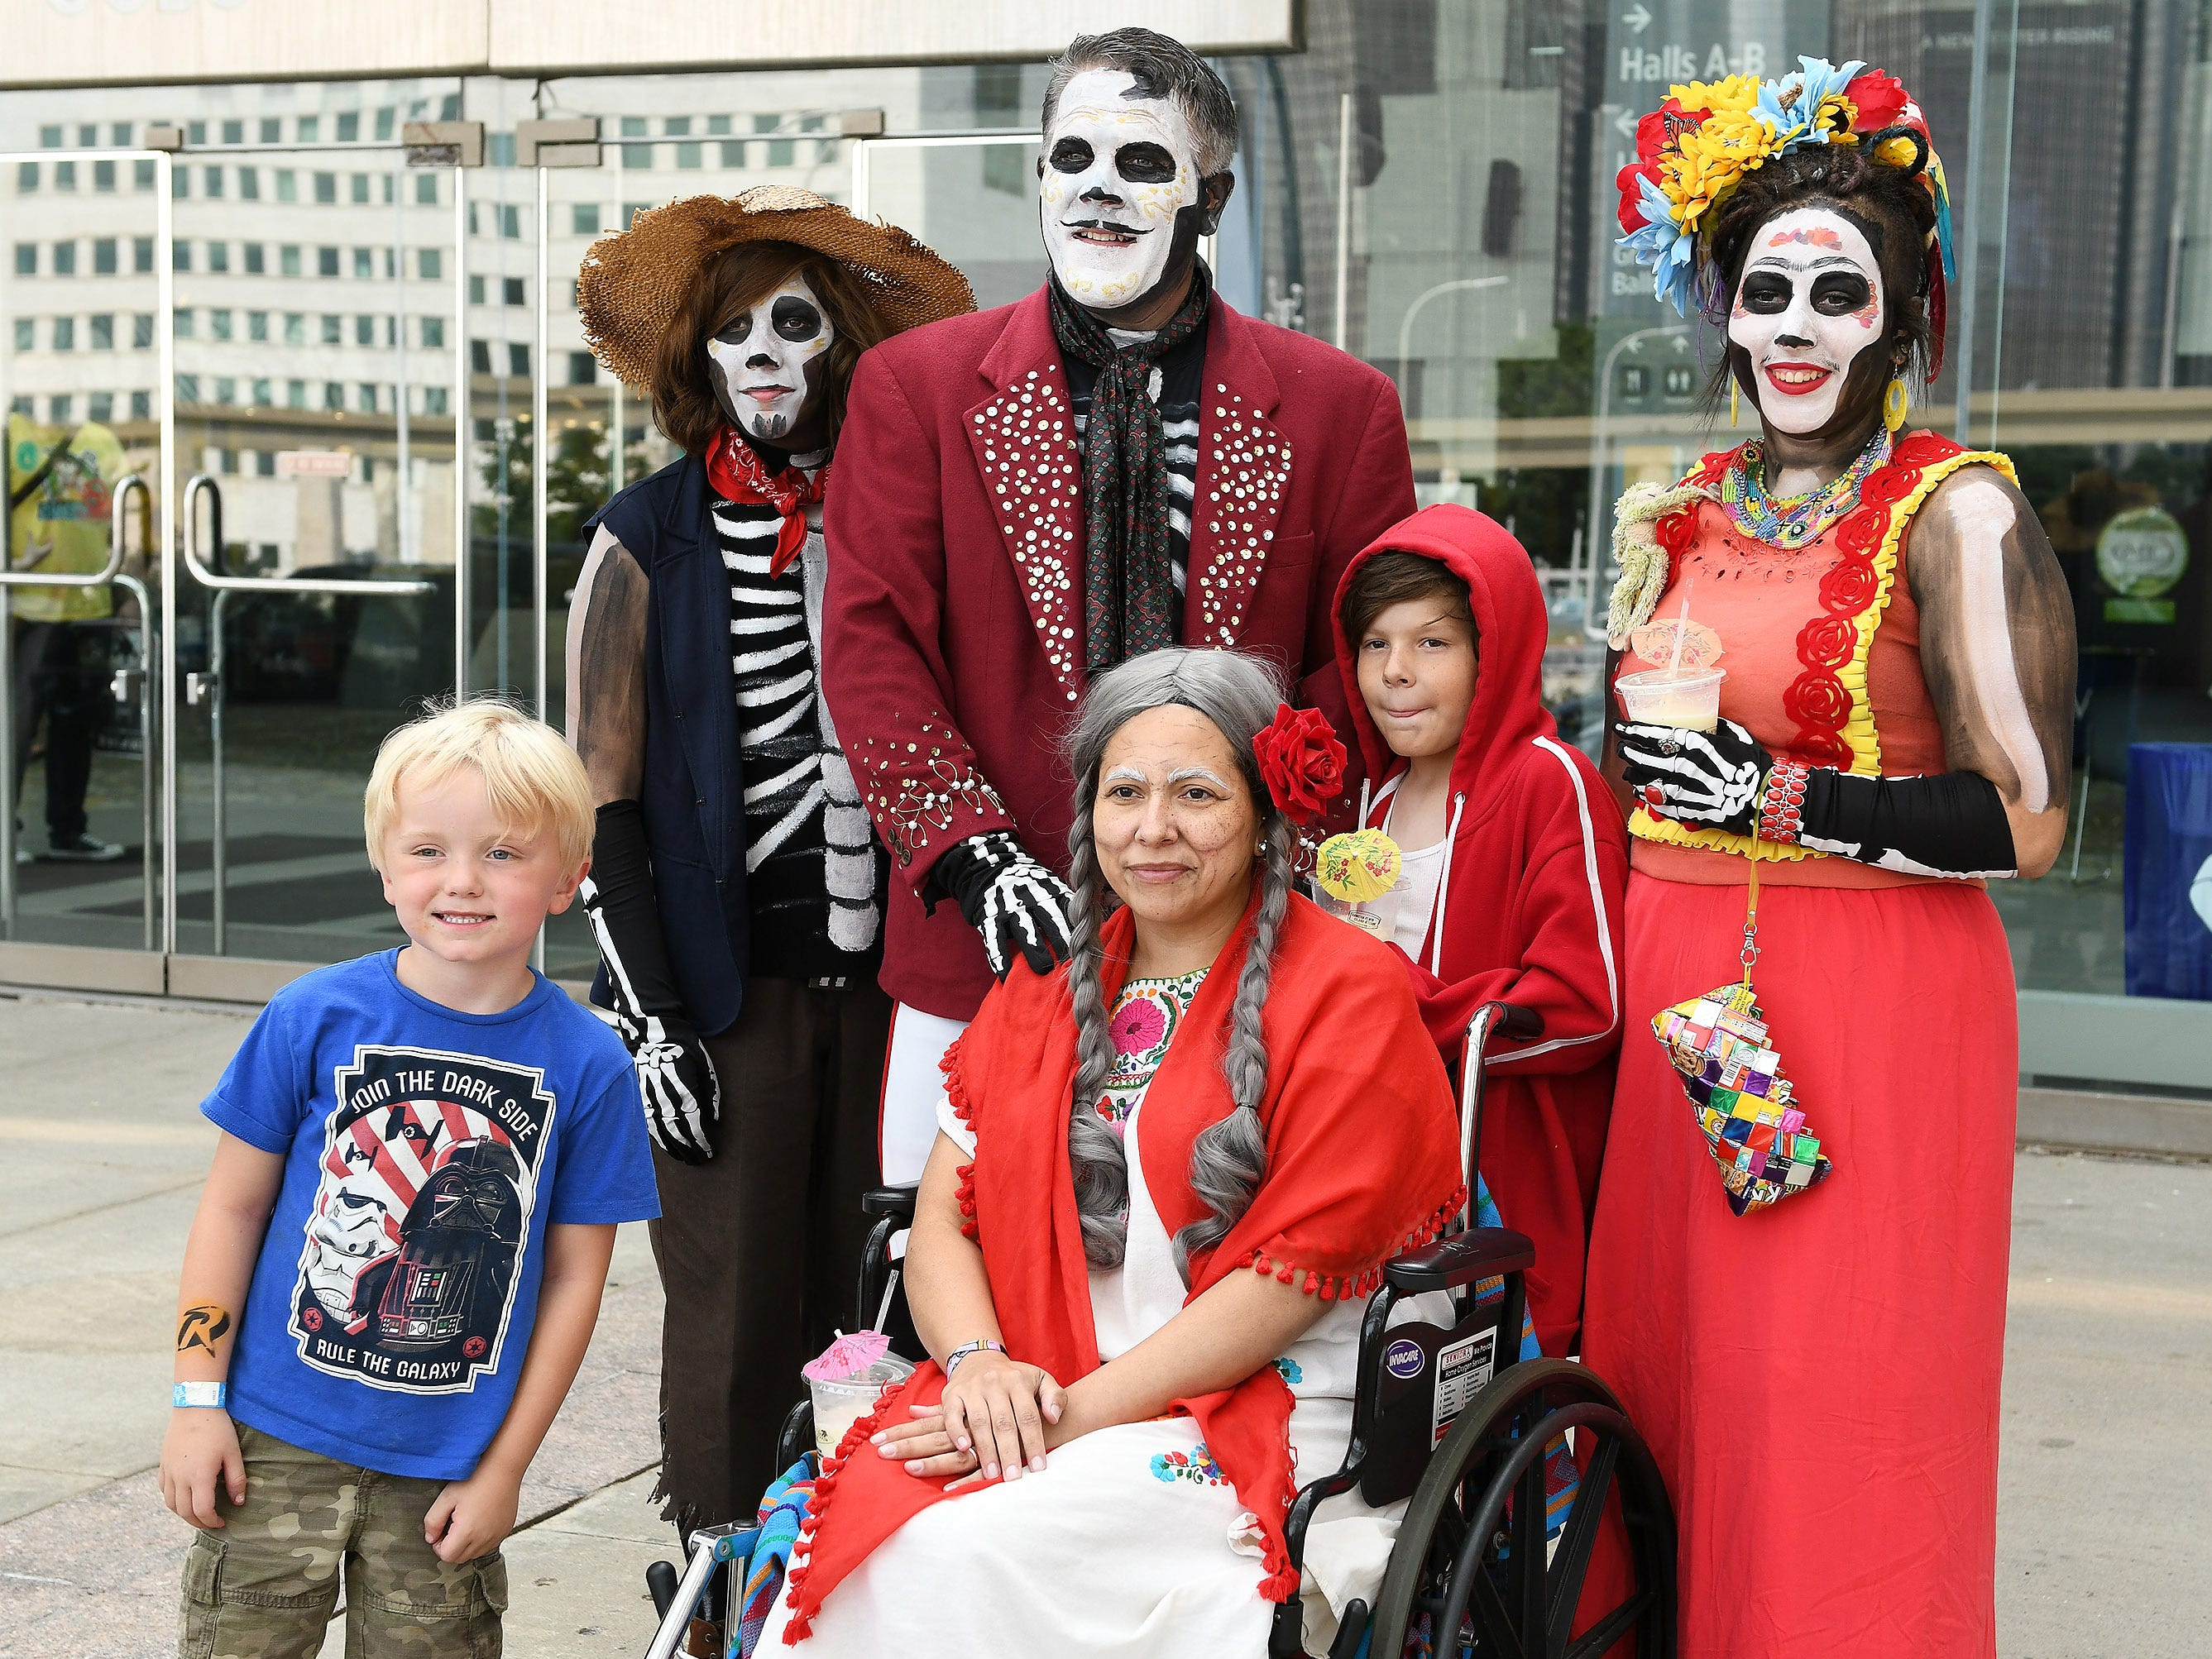 "Clay White-Hessling, left, 5, of Southgate gets in a group photo with the Shelton family from Bruce Township, who are dressed as characters from the movie ""Coco."" The Shelton family is Josette, 42, as ""Mama Coco,"" seated front, and from left, Reina, 13, as ""Hector"", Charlie, 44, as ""Ernesto de la Cruz"", Elisha, 9, as ""Miguel"" and Rica, 19, as Frida Kahlo."